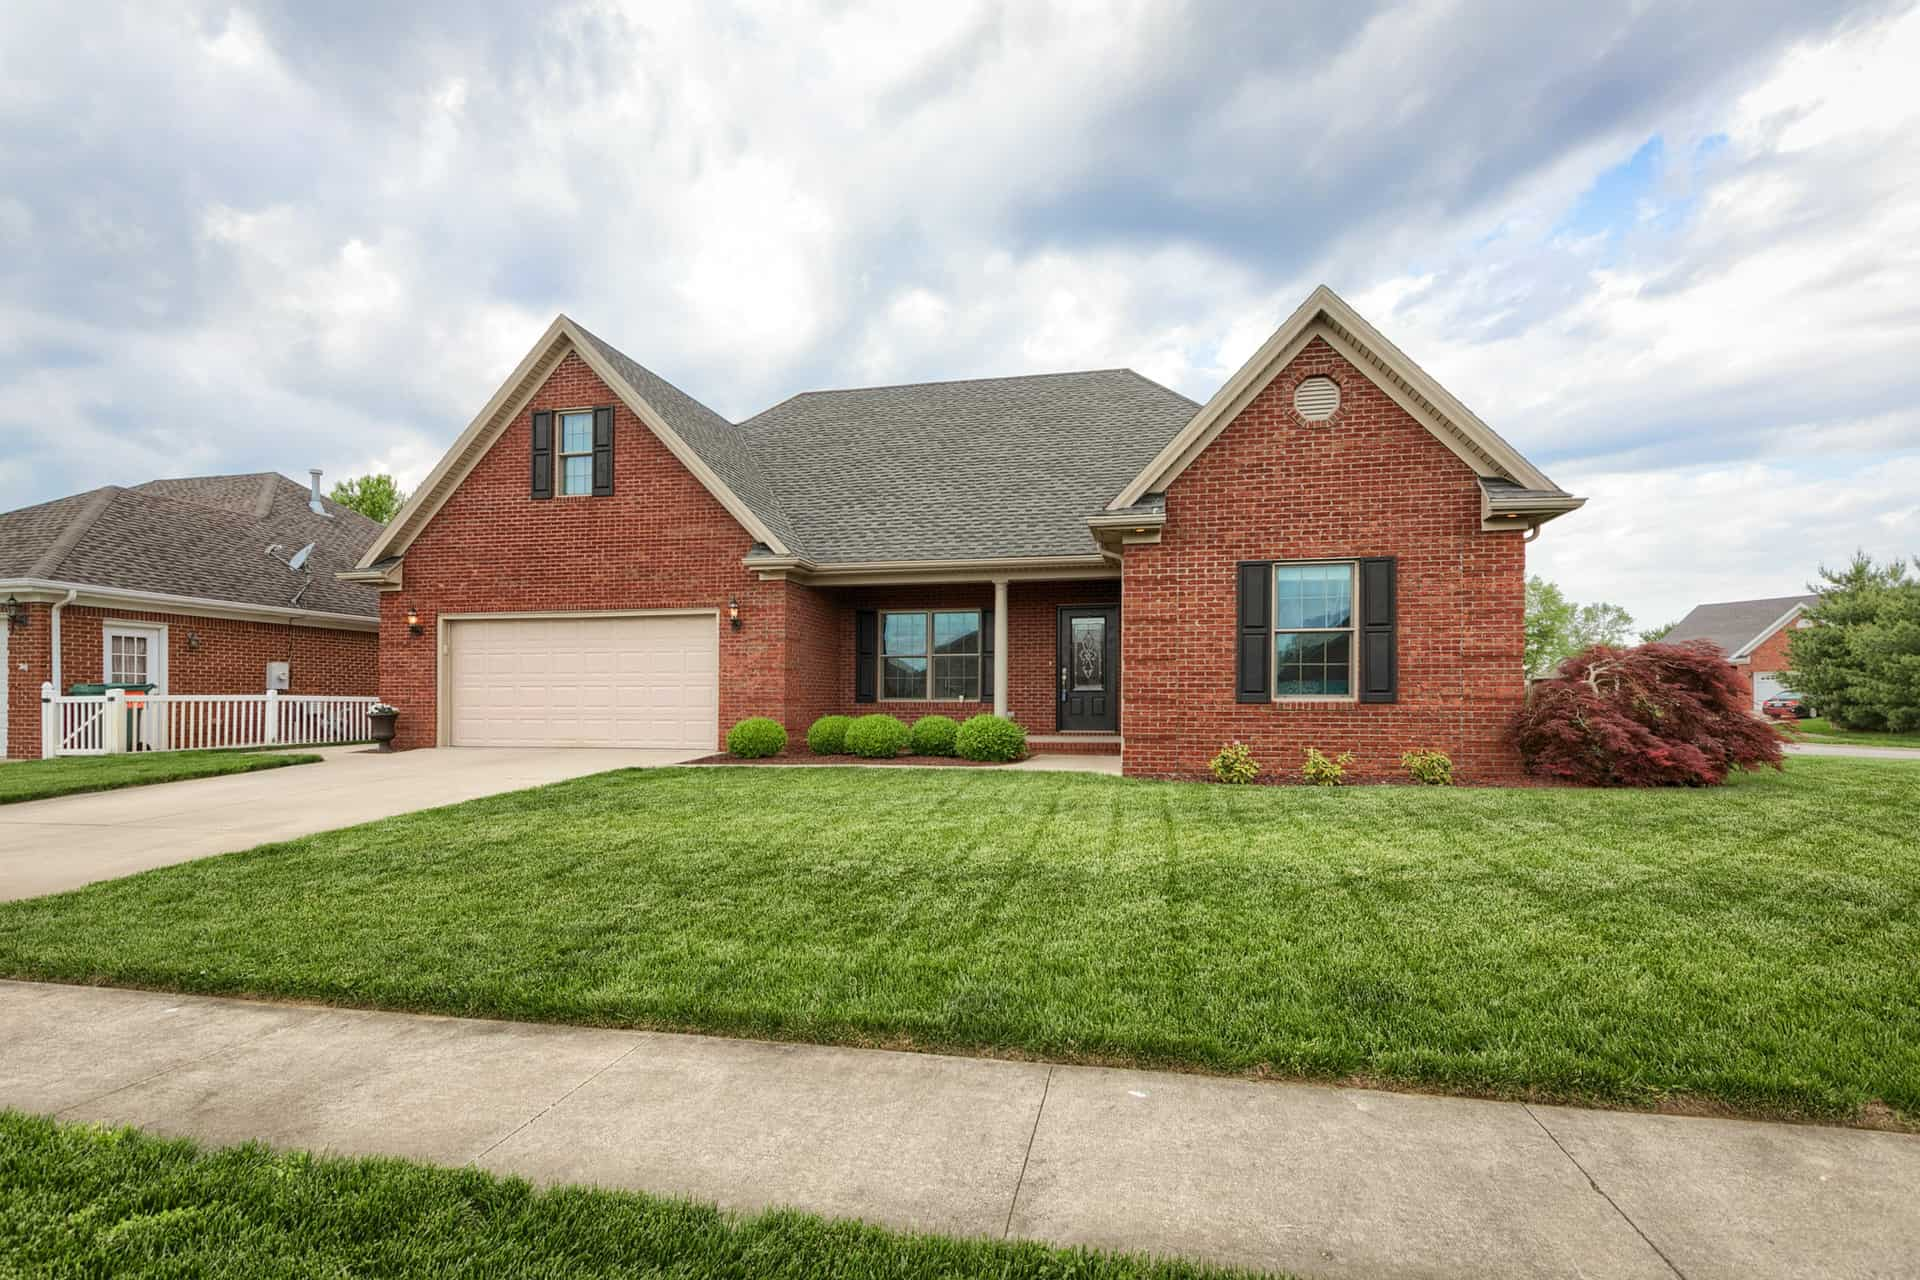 6541 Autumn Creek, Owensboro, KY 42301